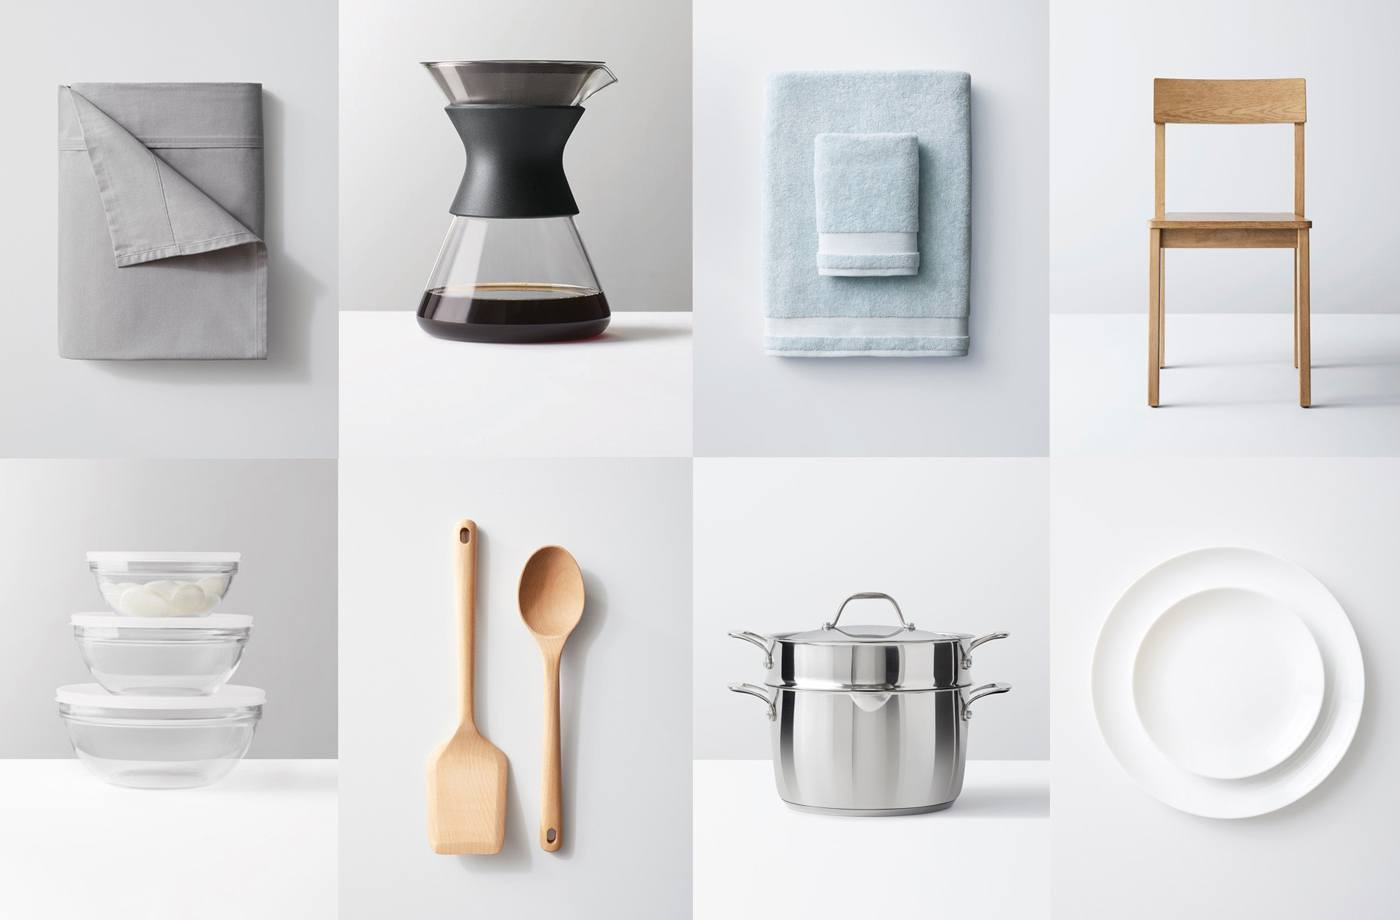 Thumbnail for Target's new home collection is a love child of minimalism and cozy Nancy Meyers vibes